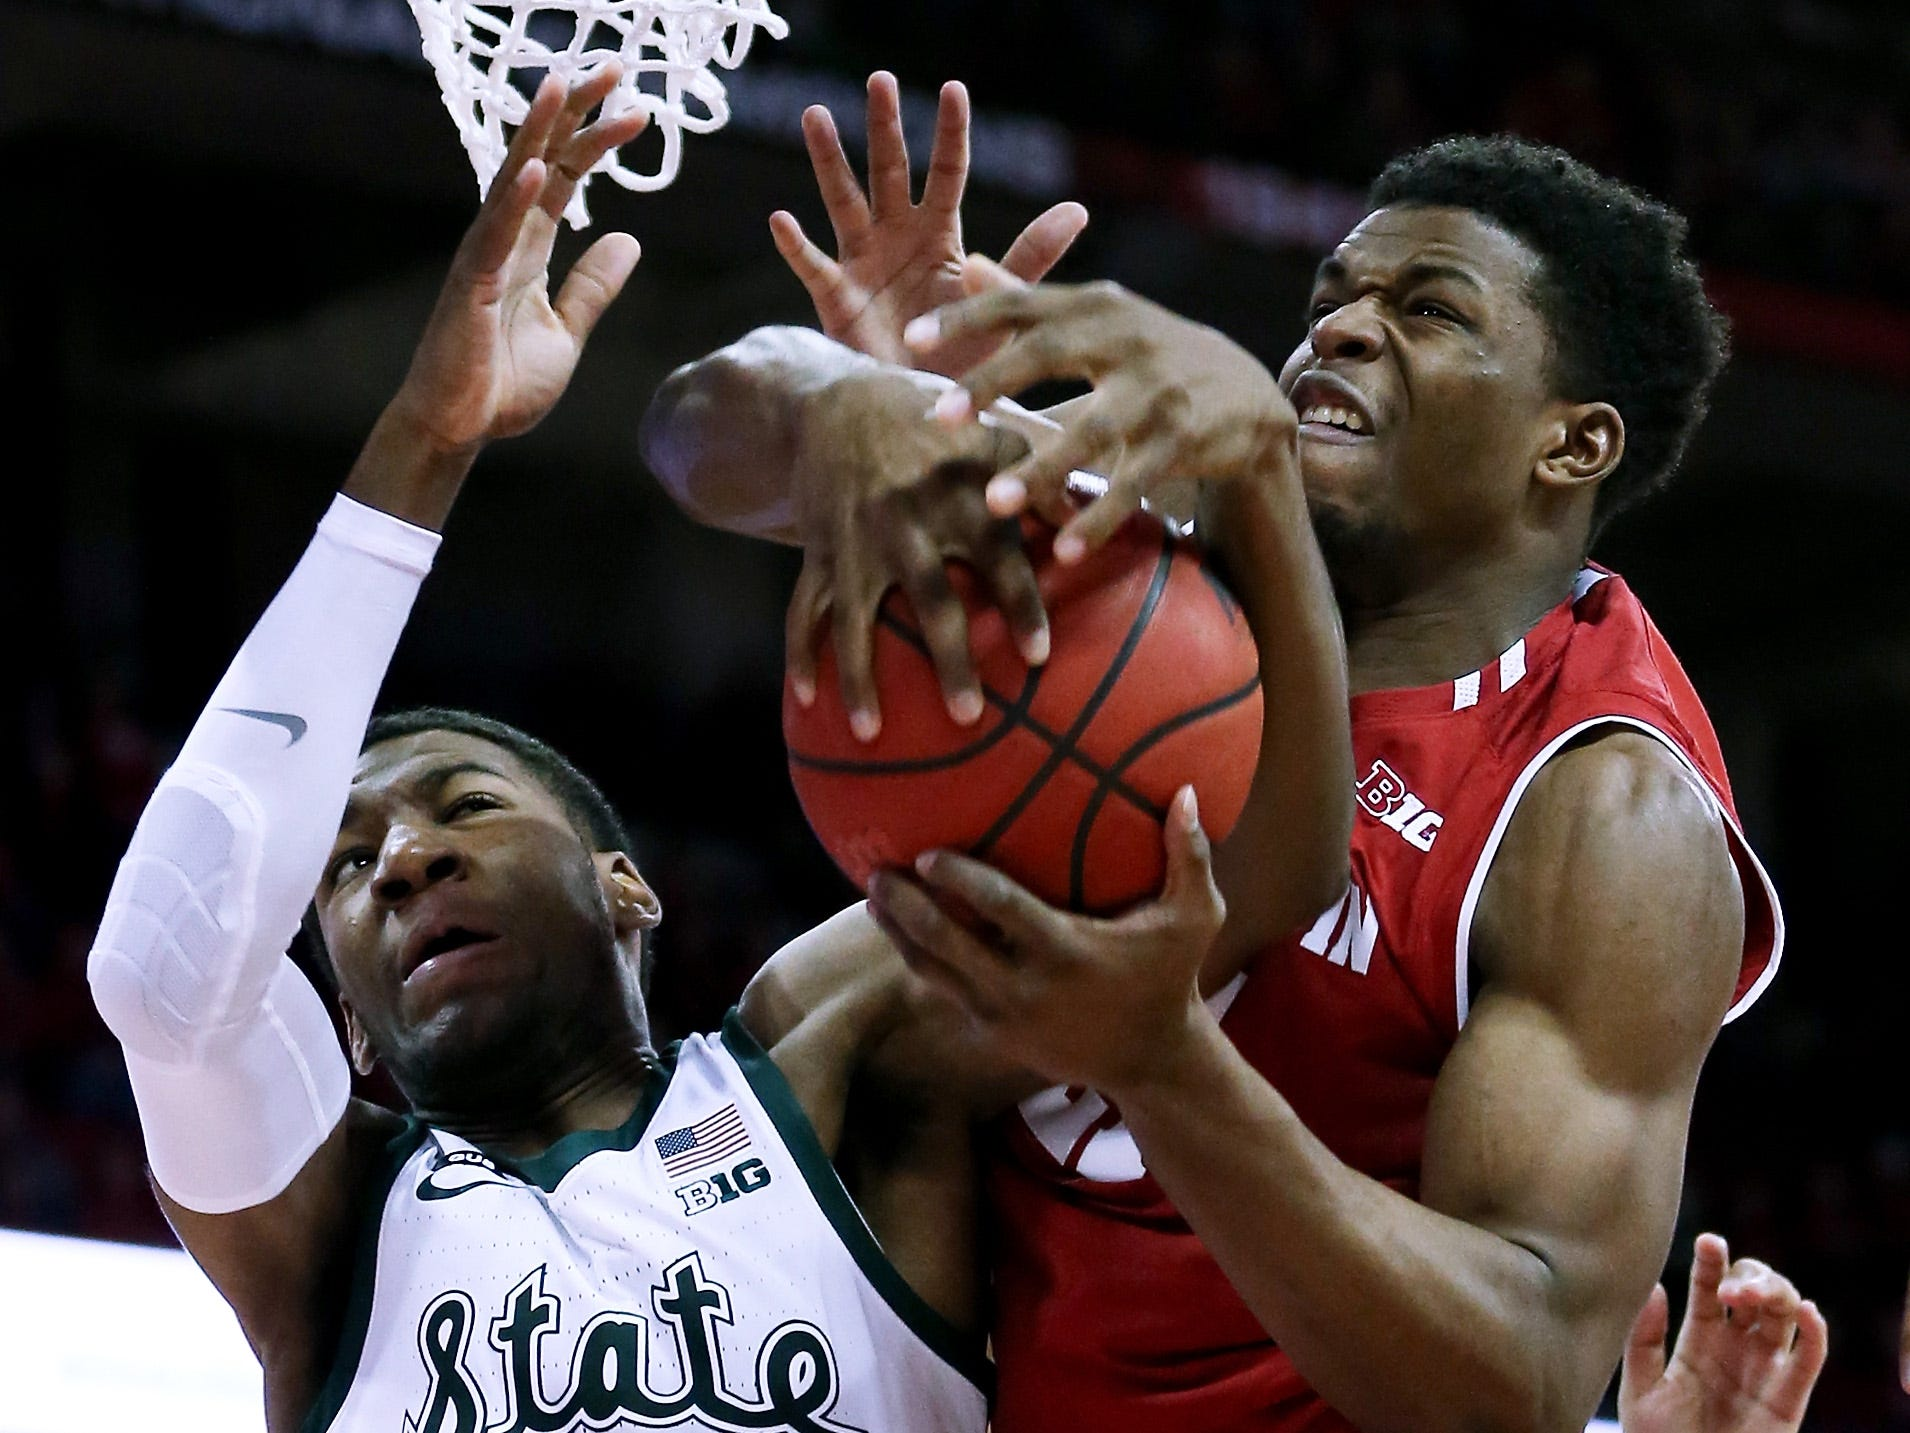 Aaron Henry #11 of the Michigan State Spartans and Khalil Iverson #21 of the Wisconsin Badgers battle for a rebound in the first half at the Kohl Center on February 12, 2019 in Madison, Wisconsin.